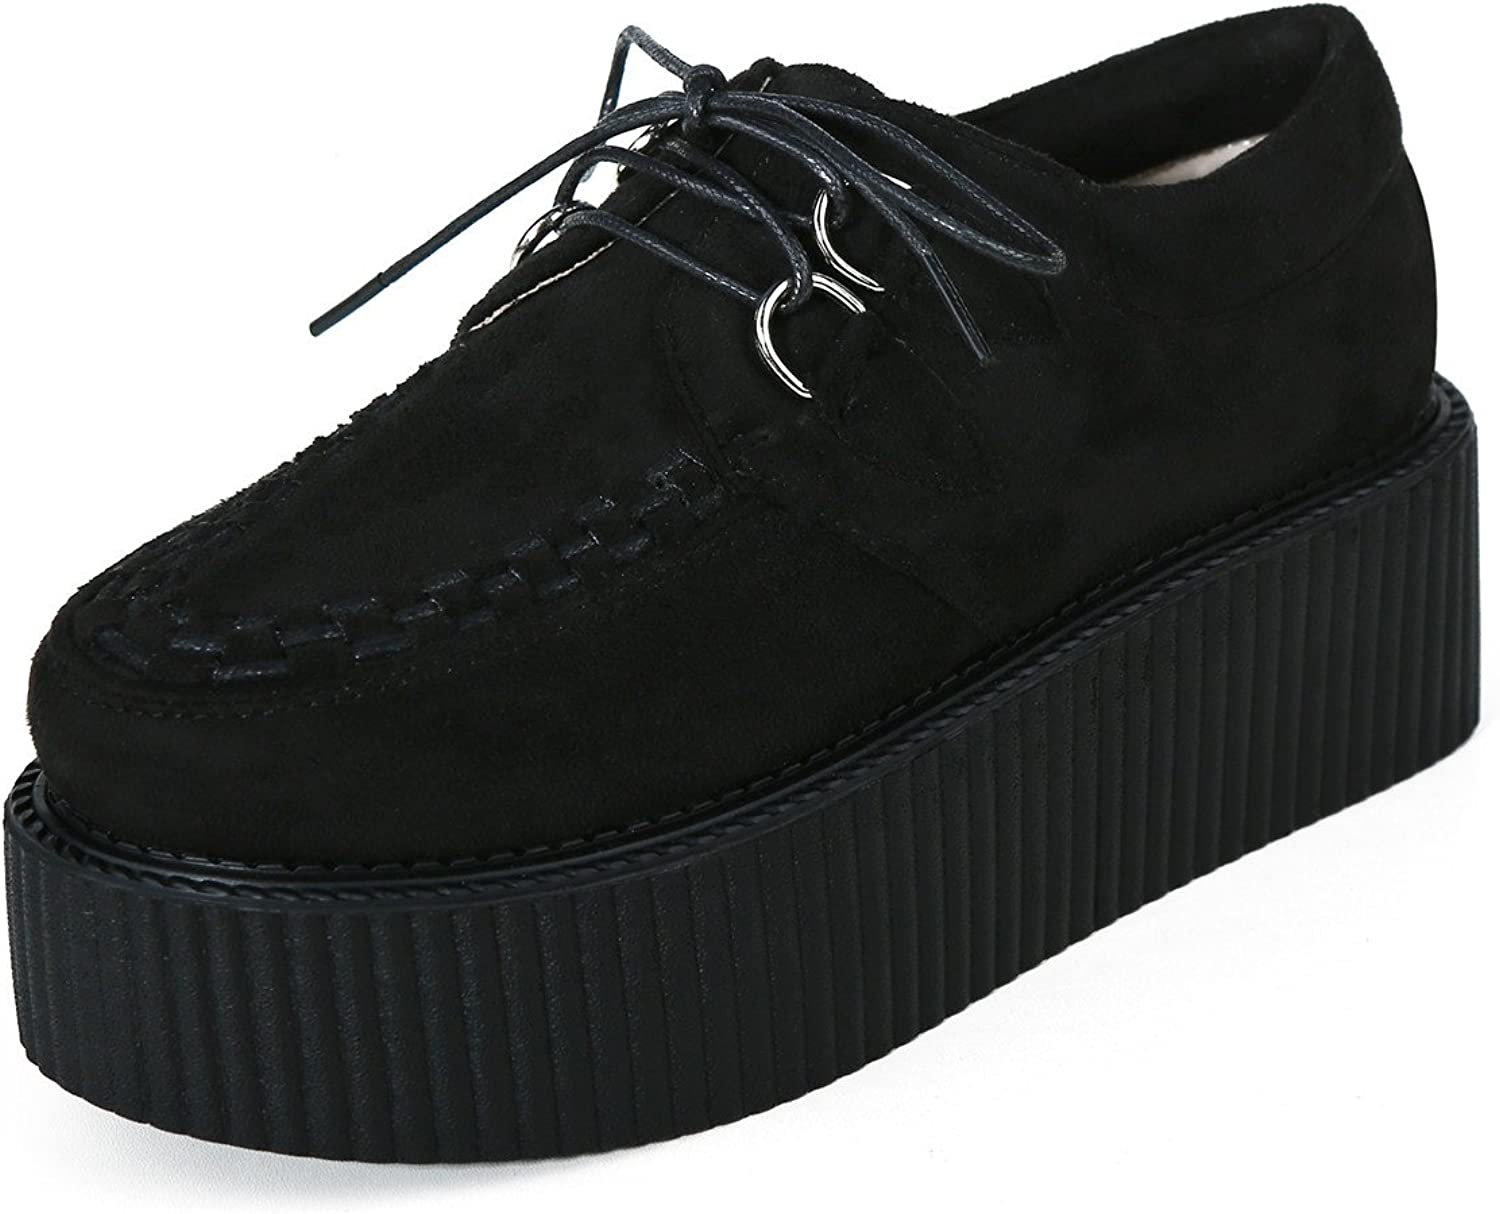 pinkG Women's Suede Lace Up Oxfords Flat Platform Creepers Punk shoes